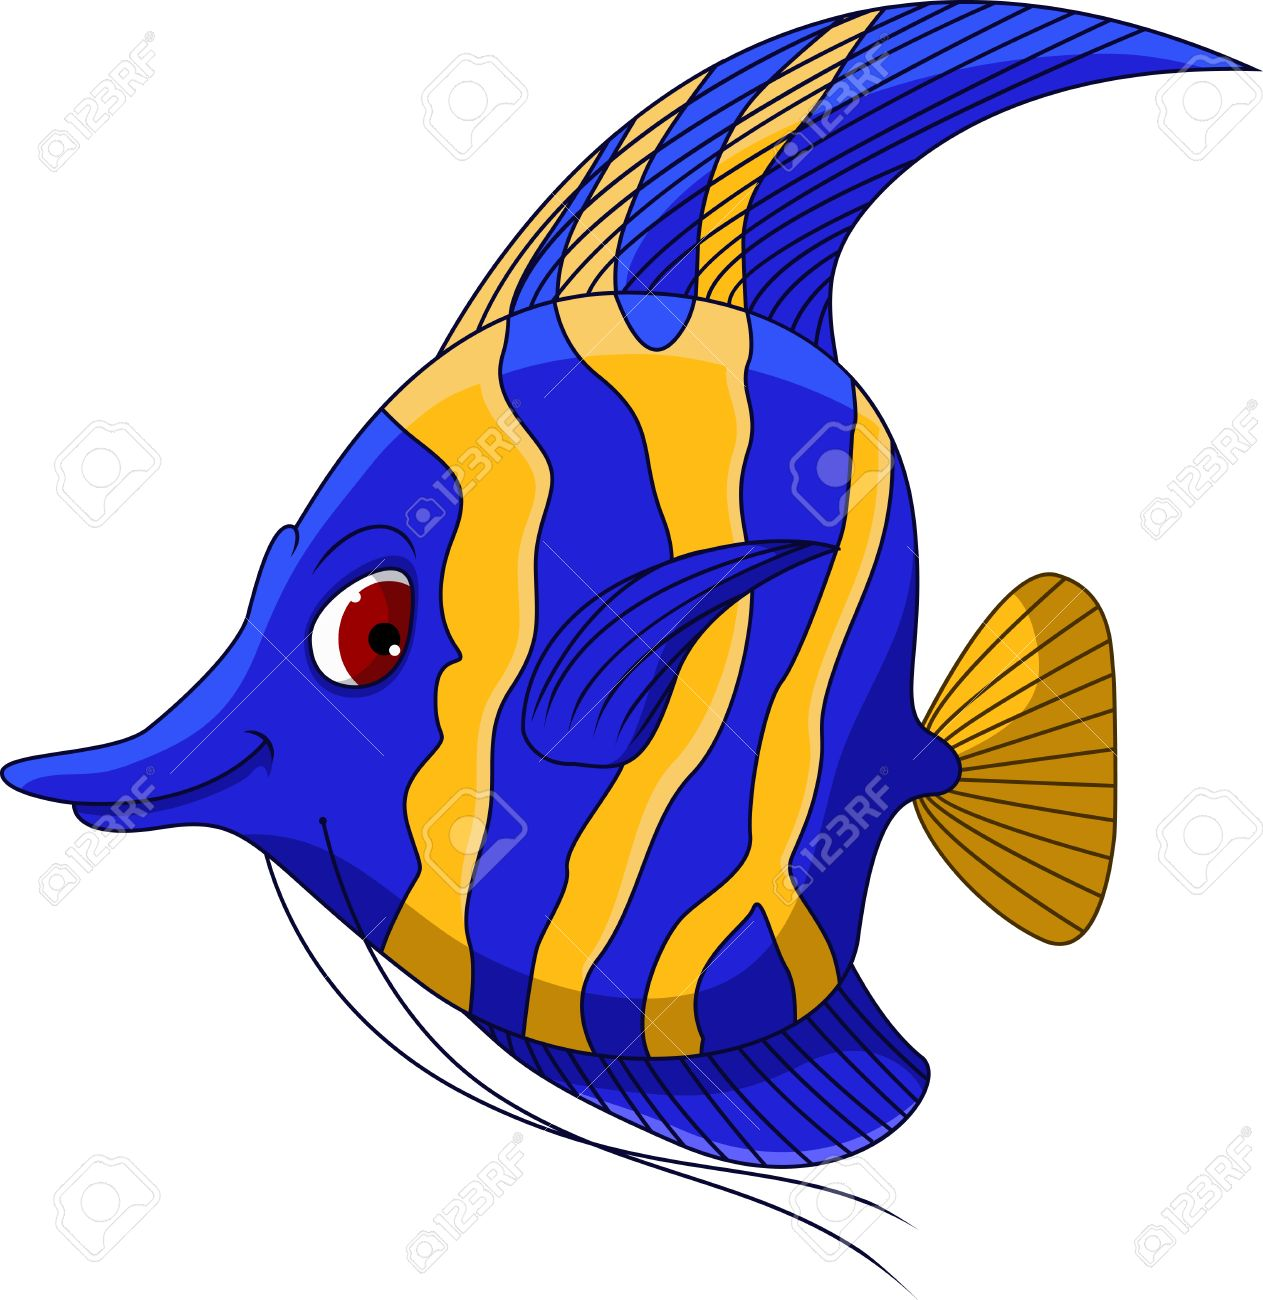 angel fish cartoon for you design royalty free cliparts vectors rh 123rf com colorful angelfish clipart angelfish clipart